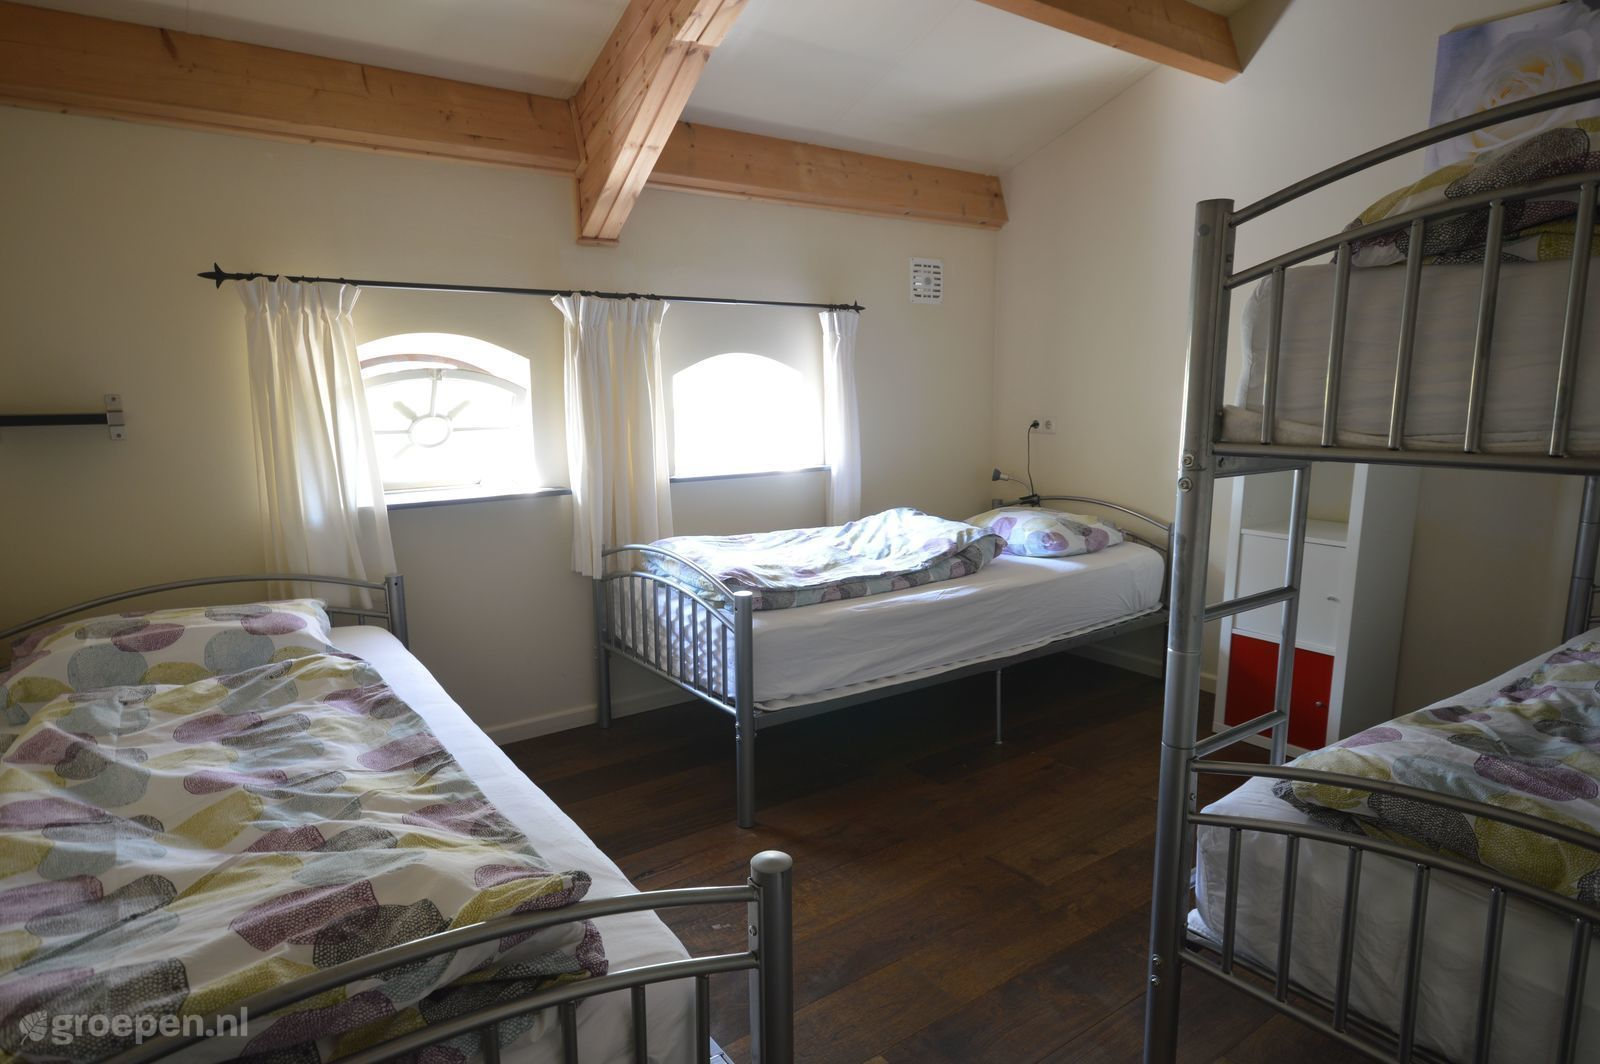 Group accommodation Erp